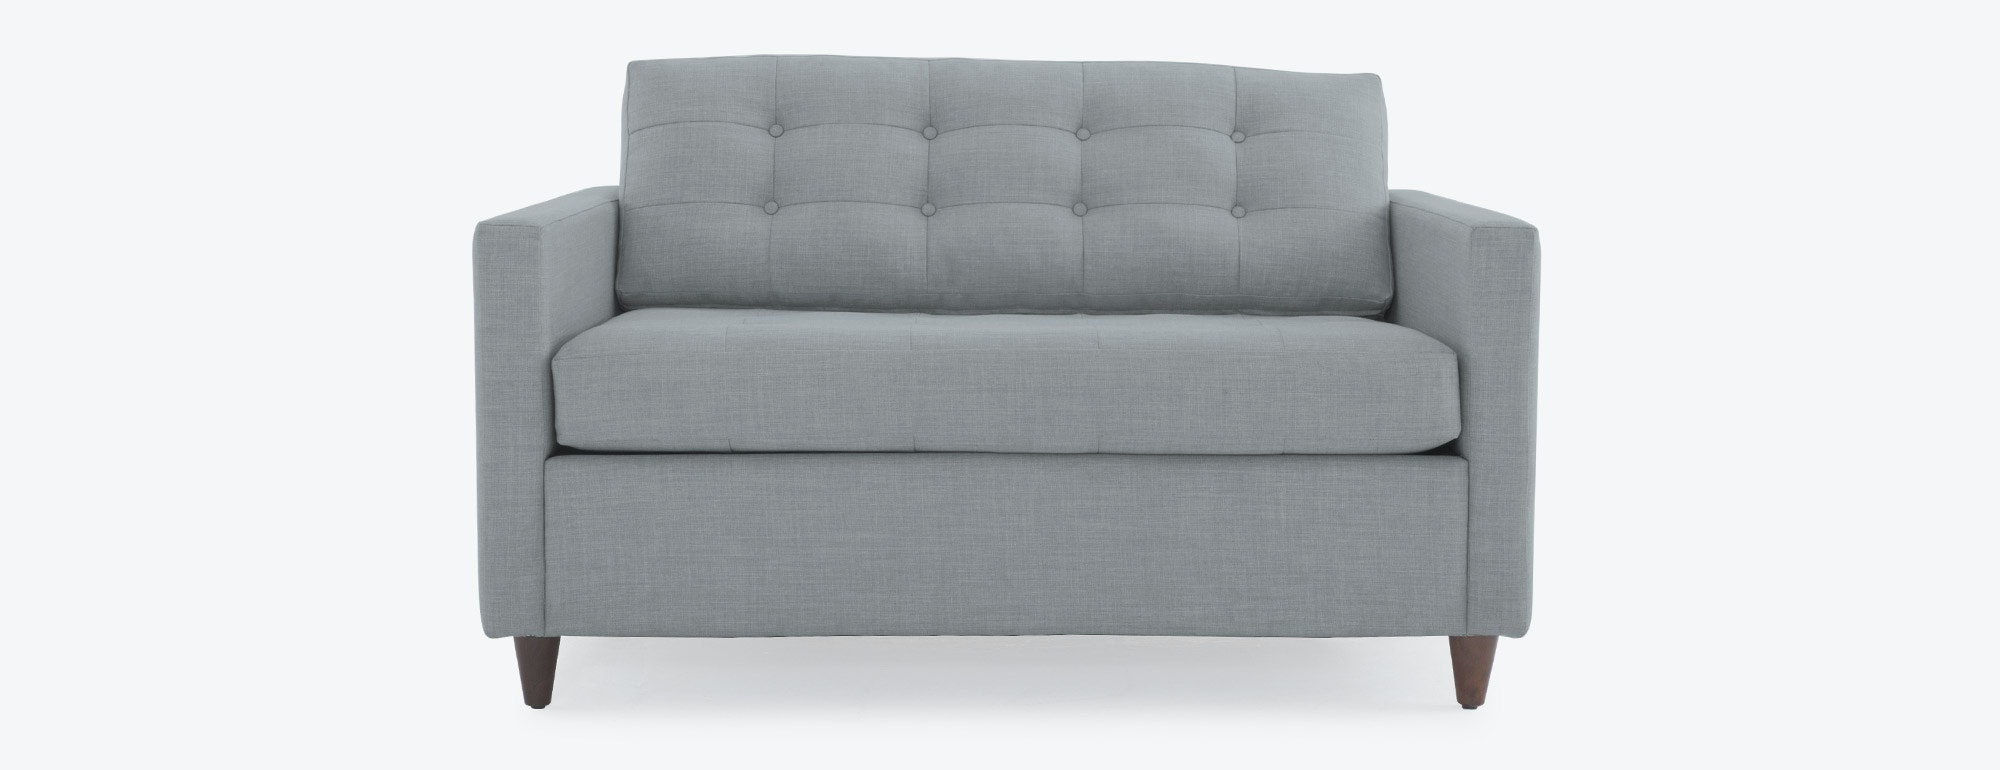 loveseat twin sleeper sofa sofas nyc willow crate and